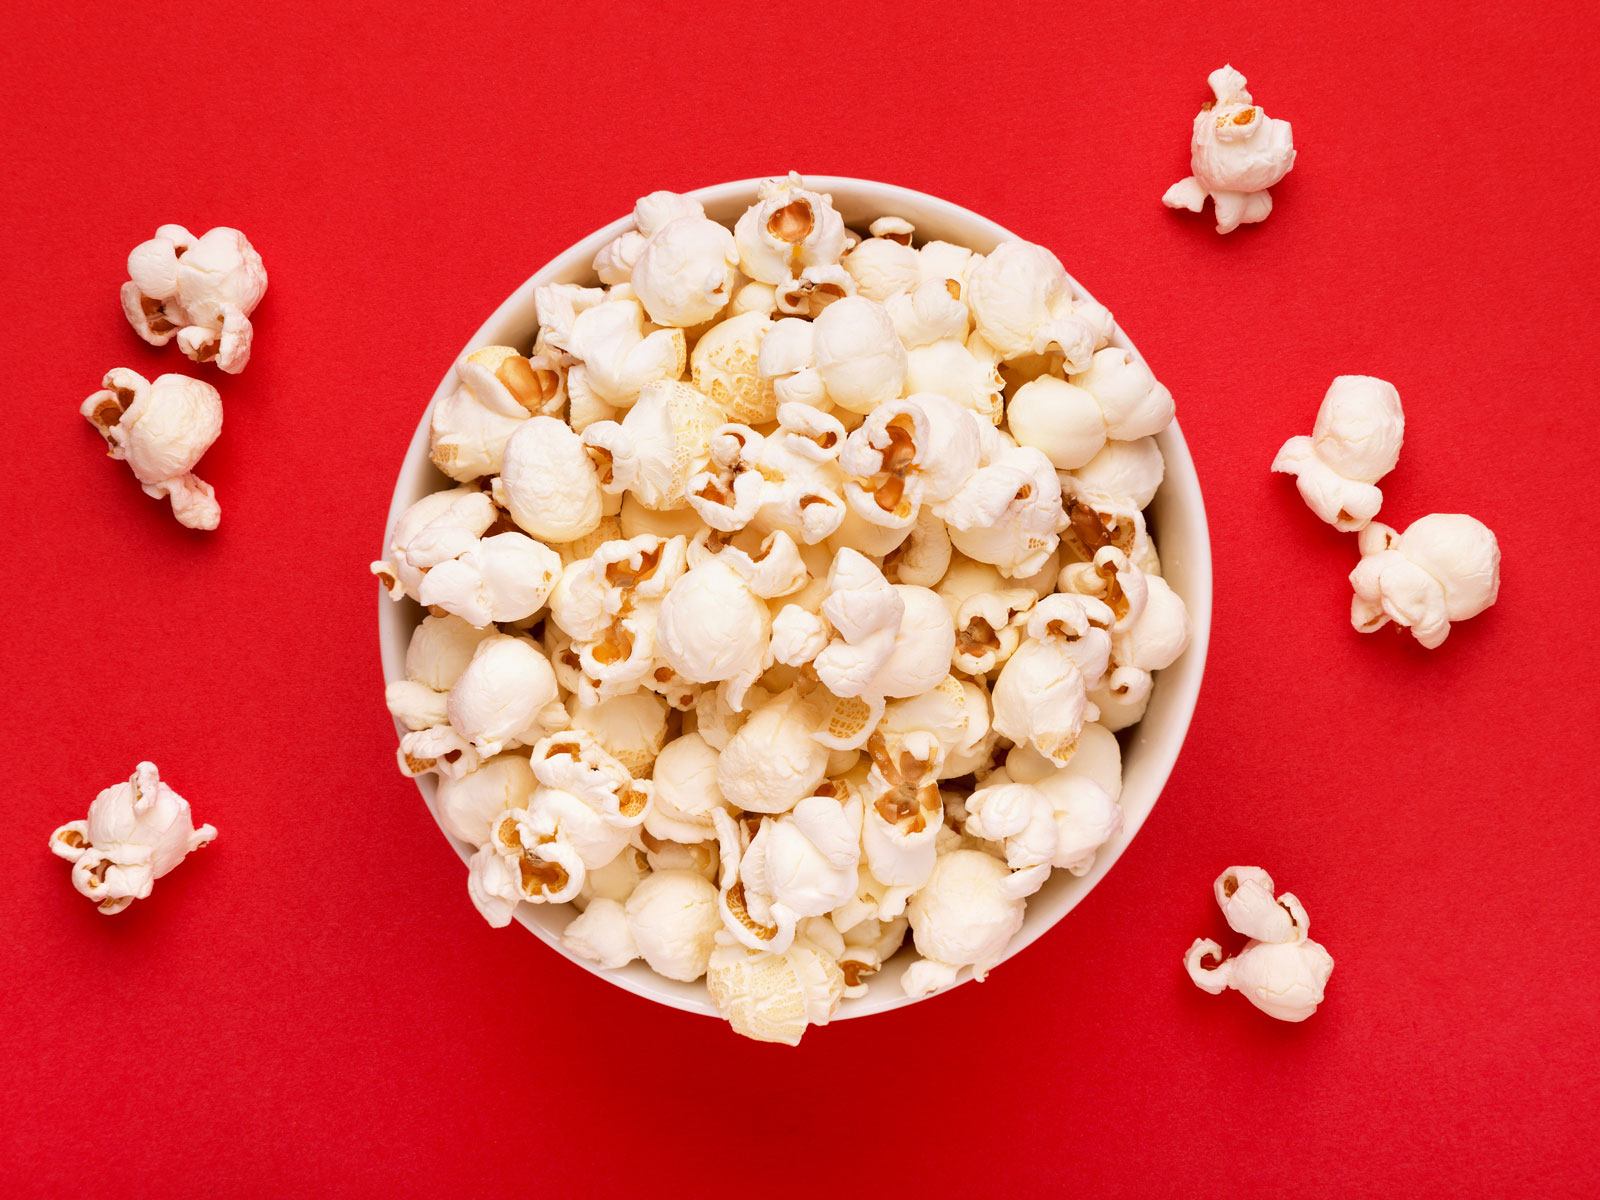 How to Use Up Leftover Popcorn